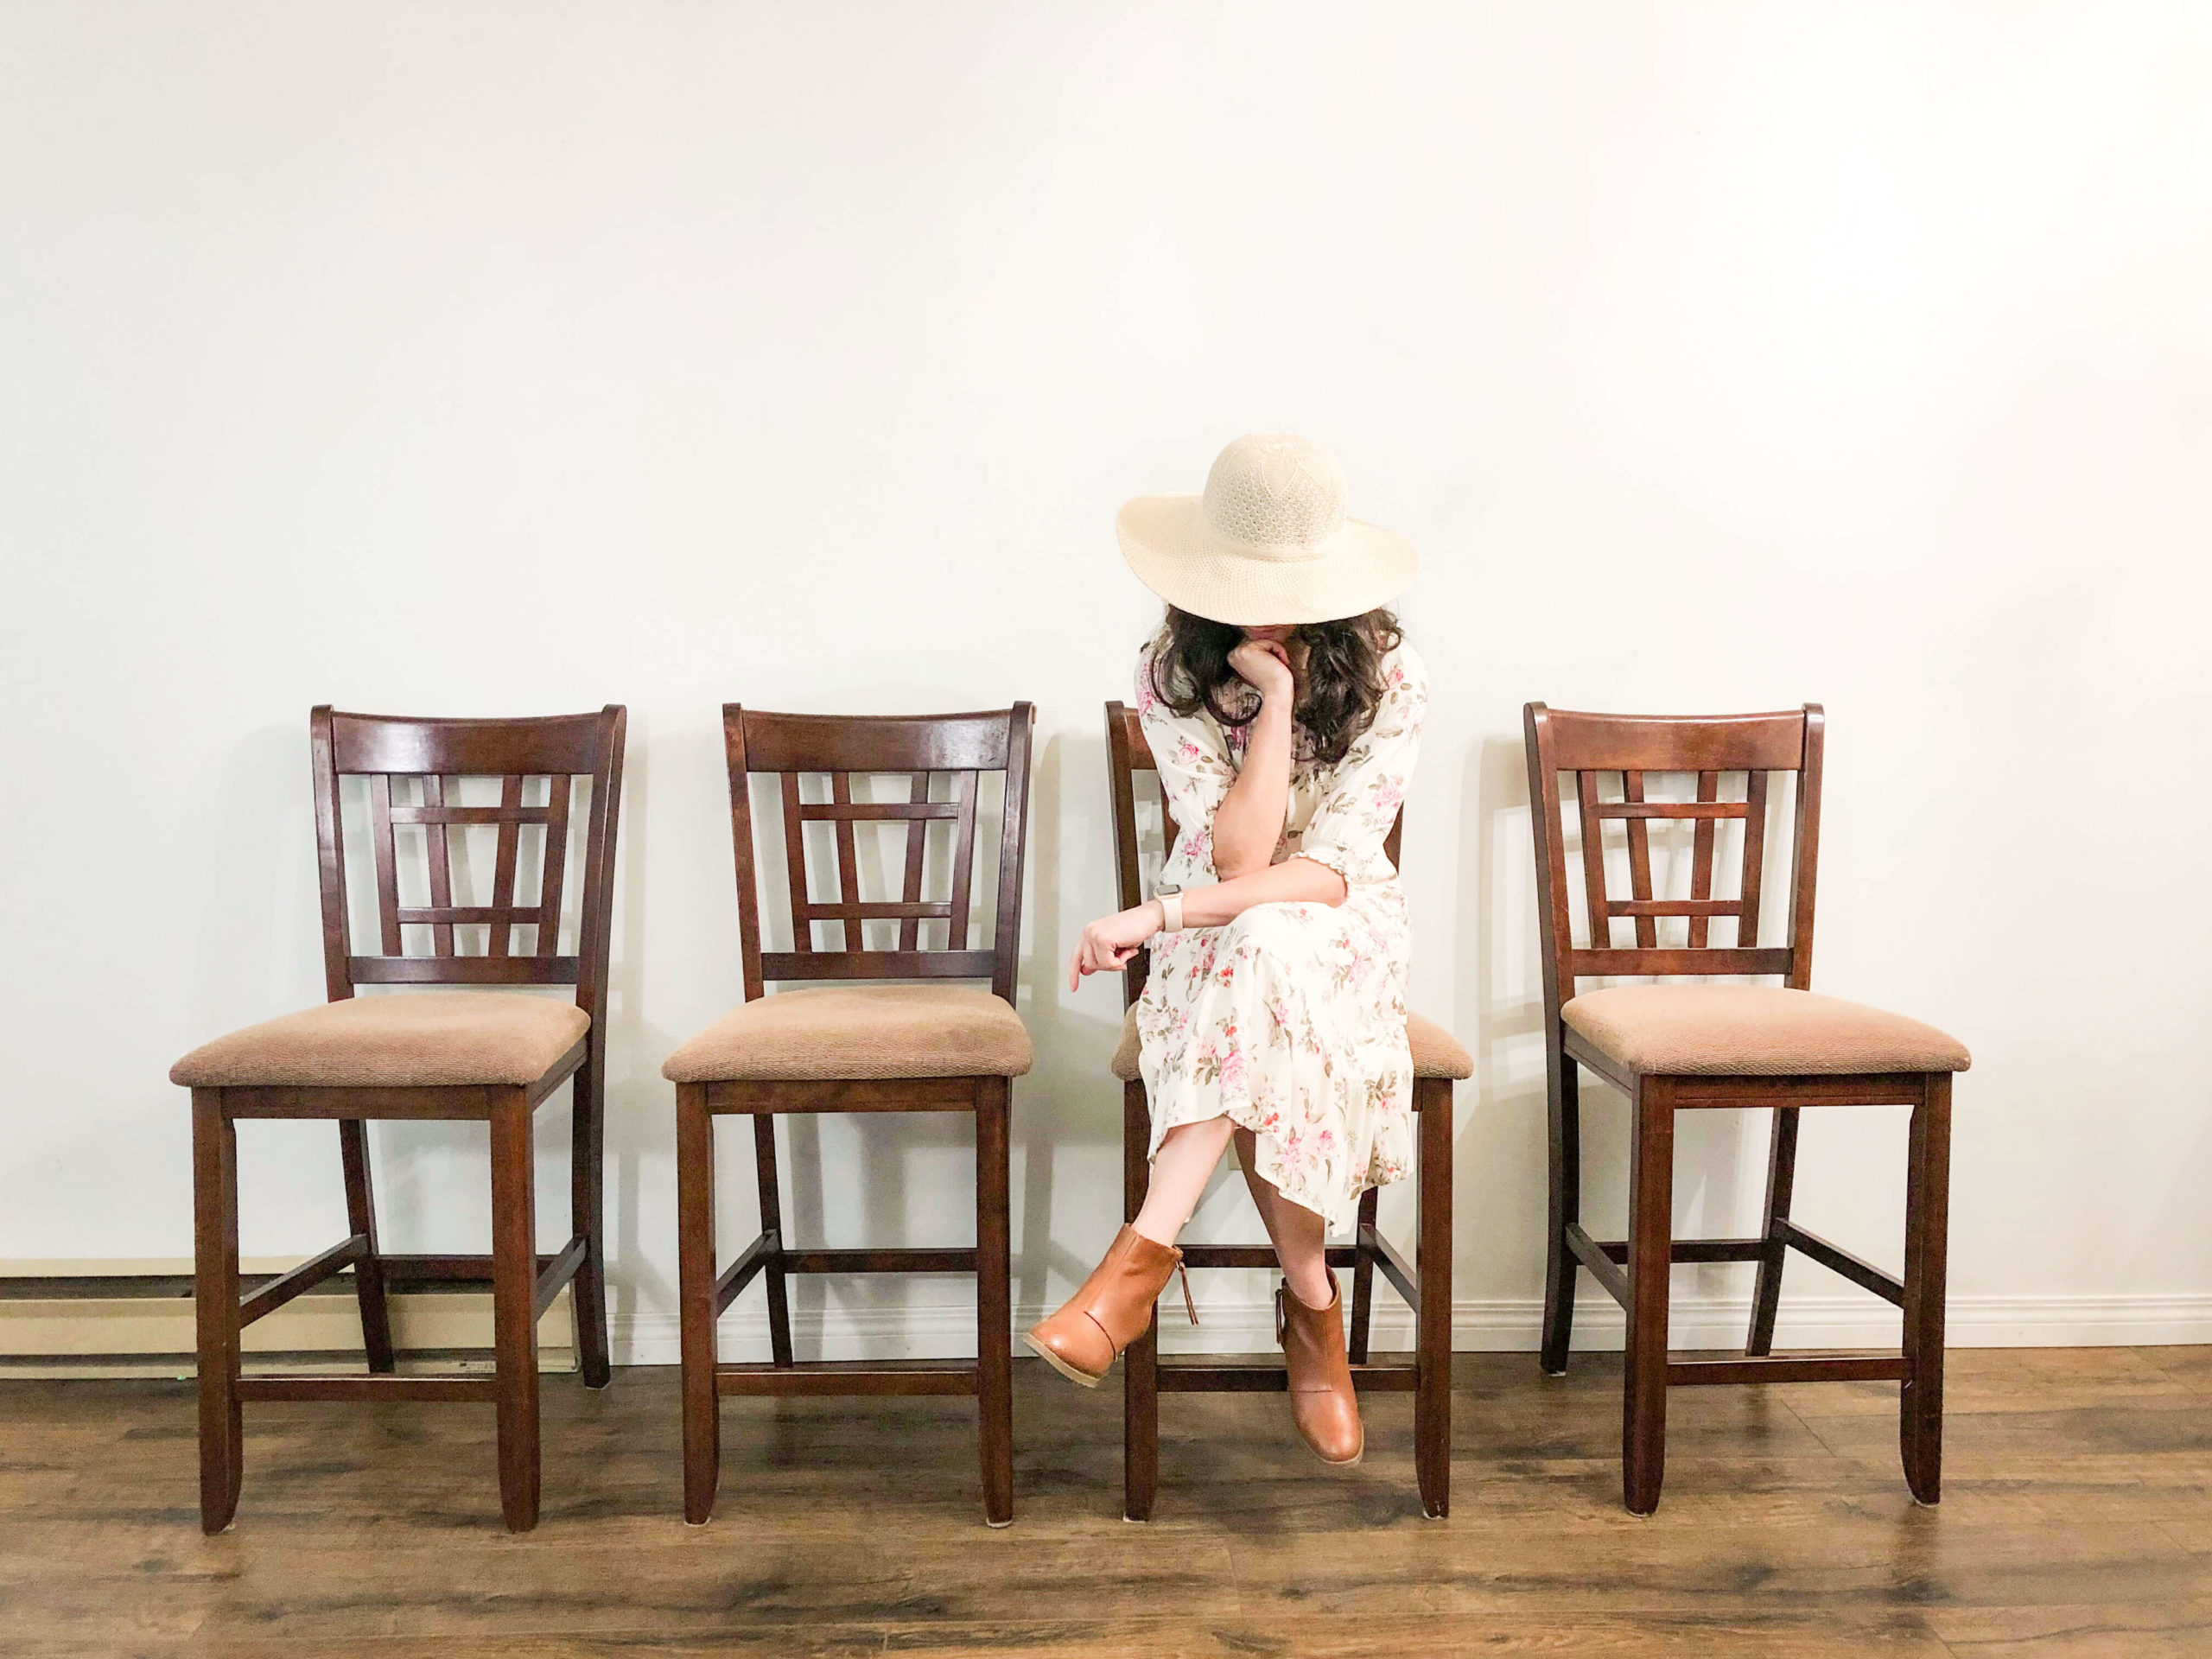 Woman wearing hat over face sits in waiting room